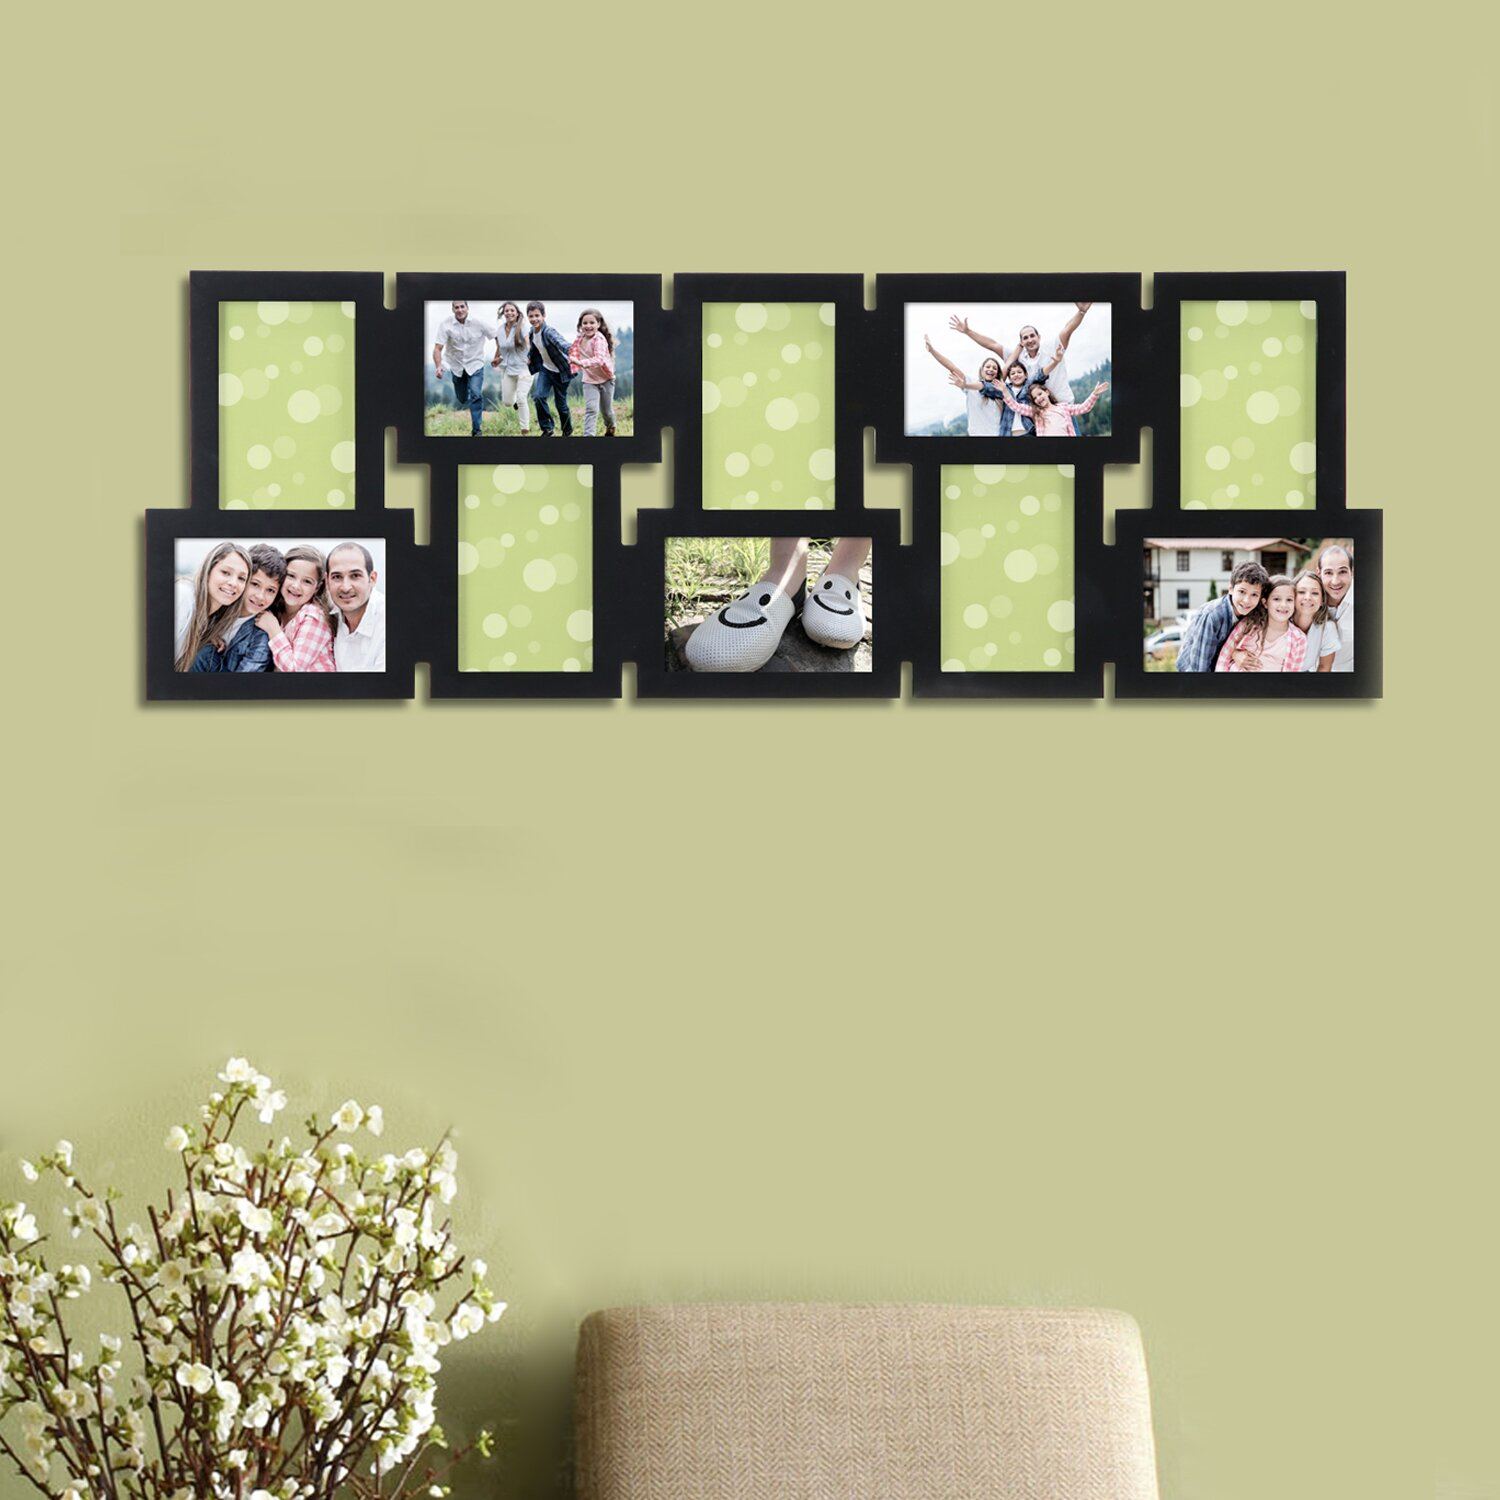 Wall Collage Living Room Adecotrading 10 Opening Decorative Interlocking Wall Hanging